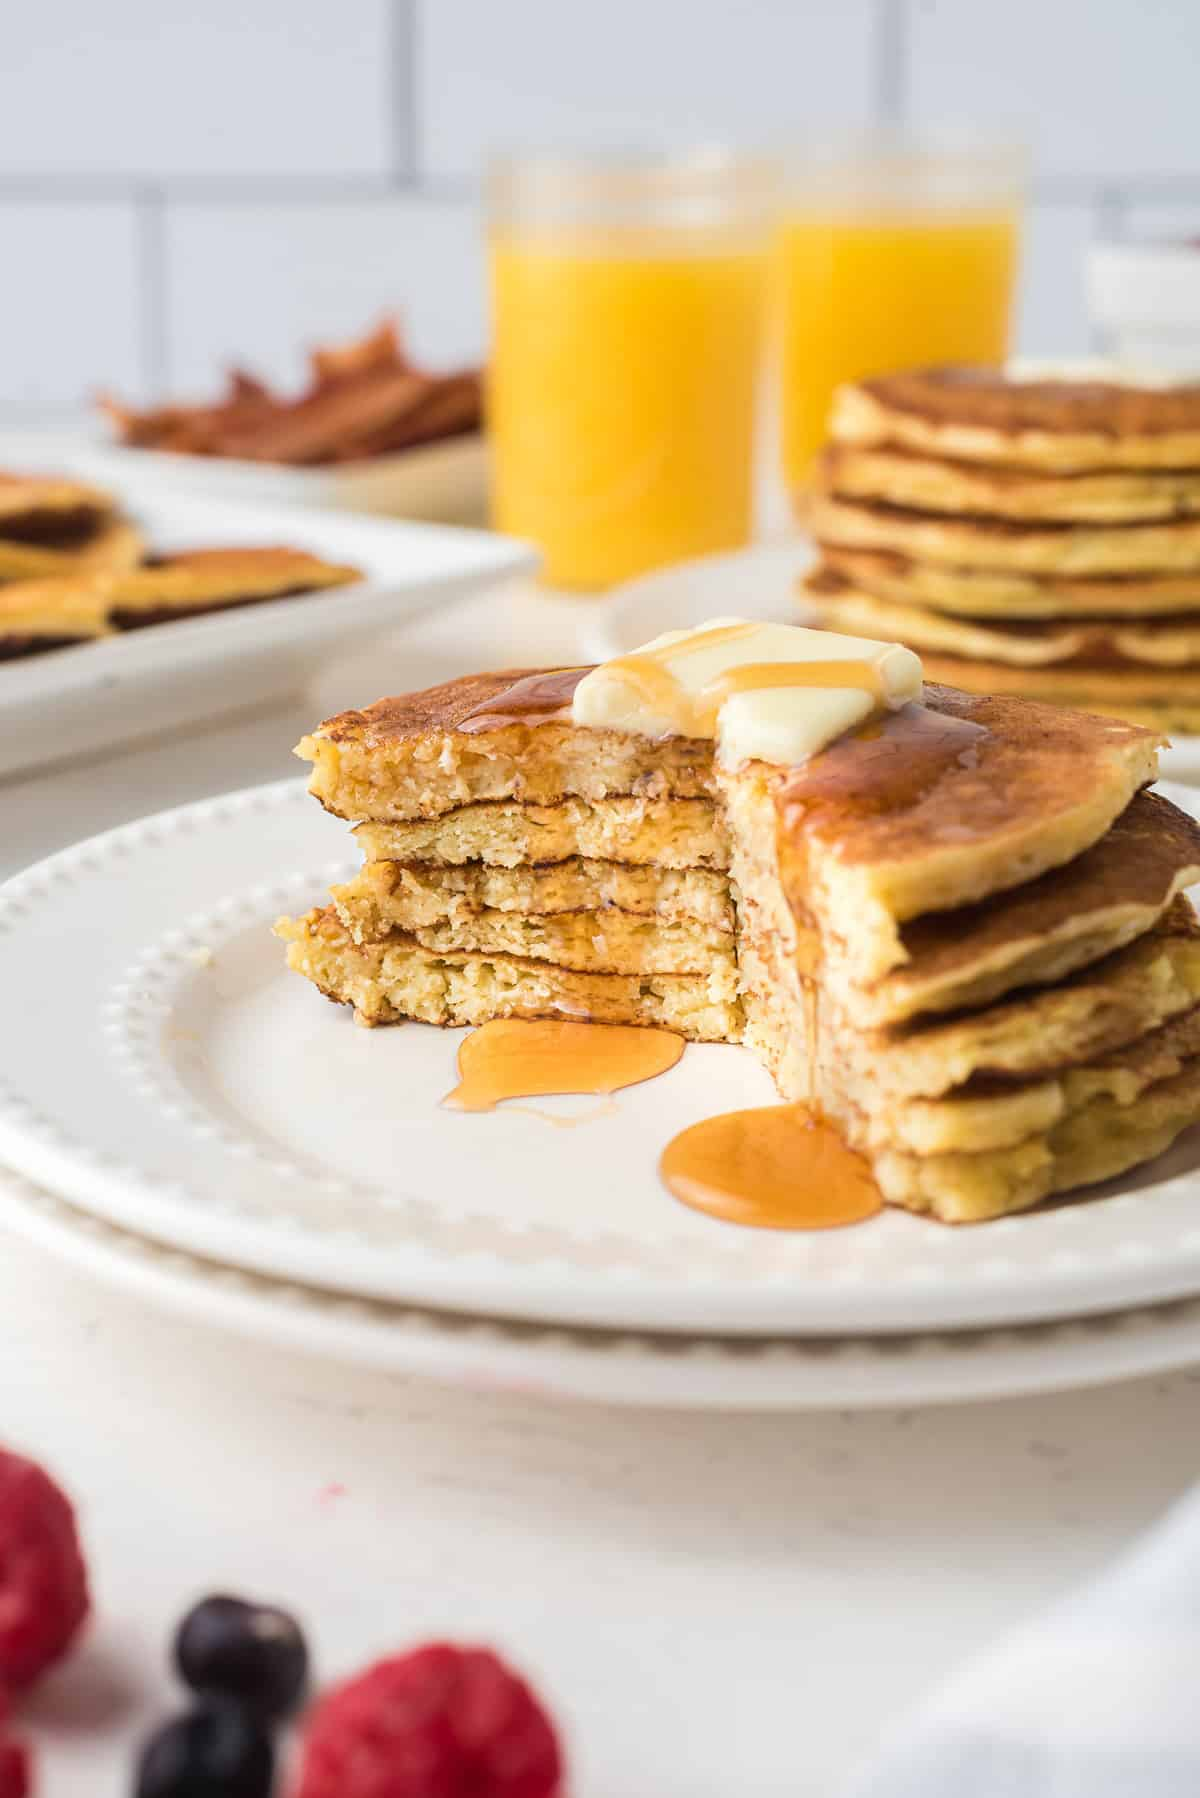 Cut stack of pancakes dripping with maple syrup.